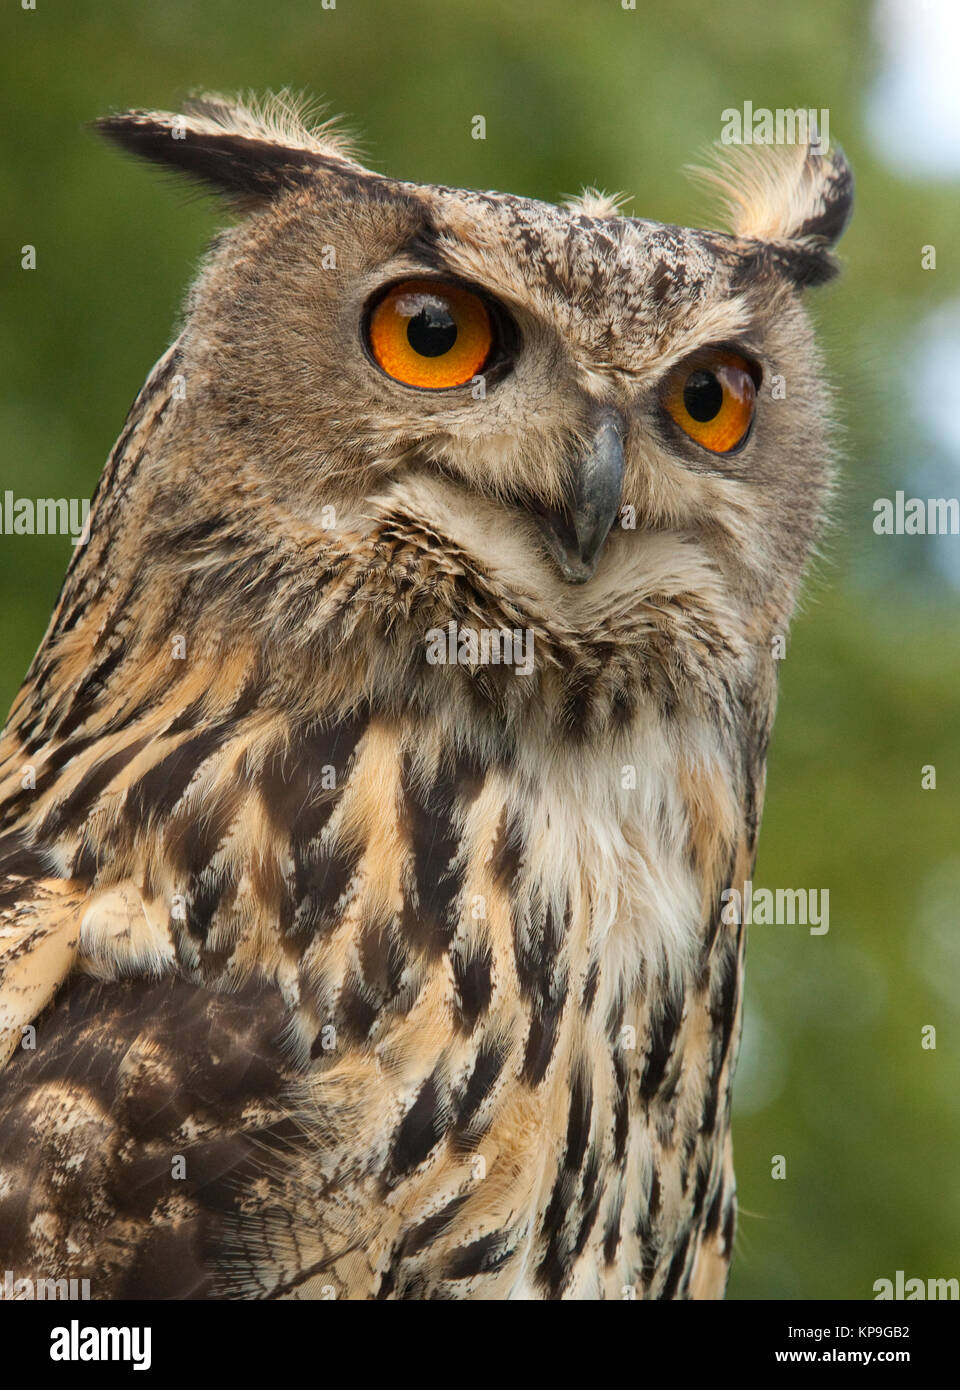 A European Eagle Owl (Bubo bubo) in the Highlands of northern Scotland. - Stock Image